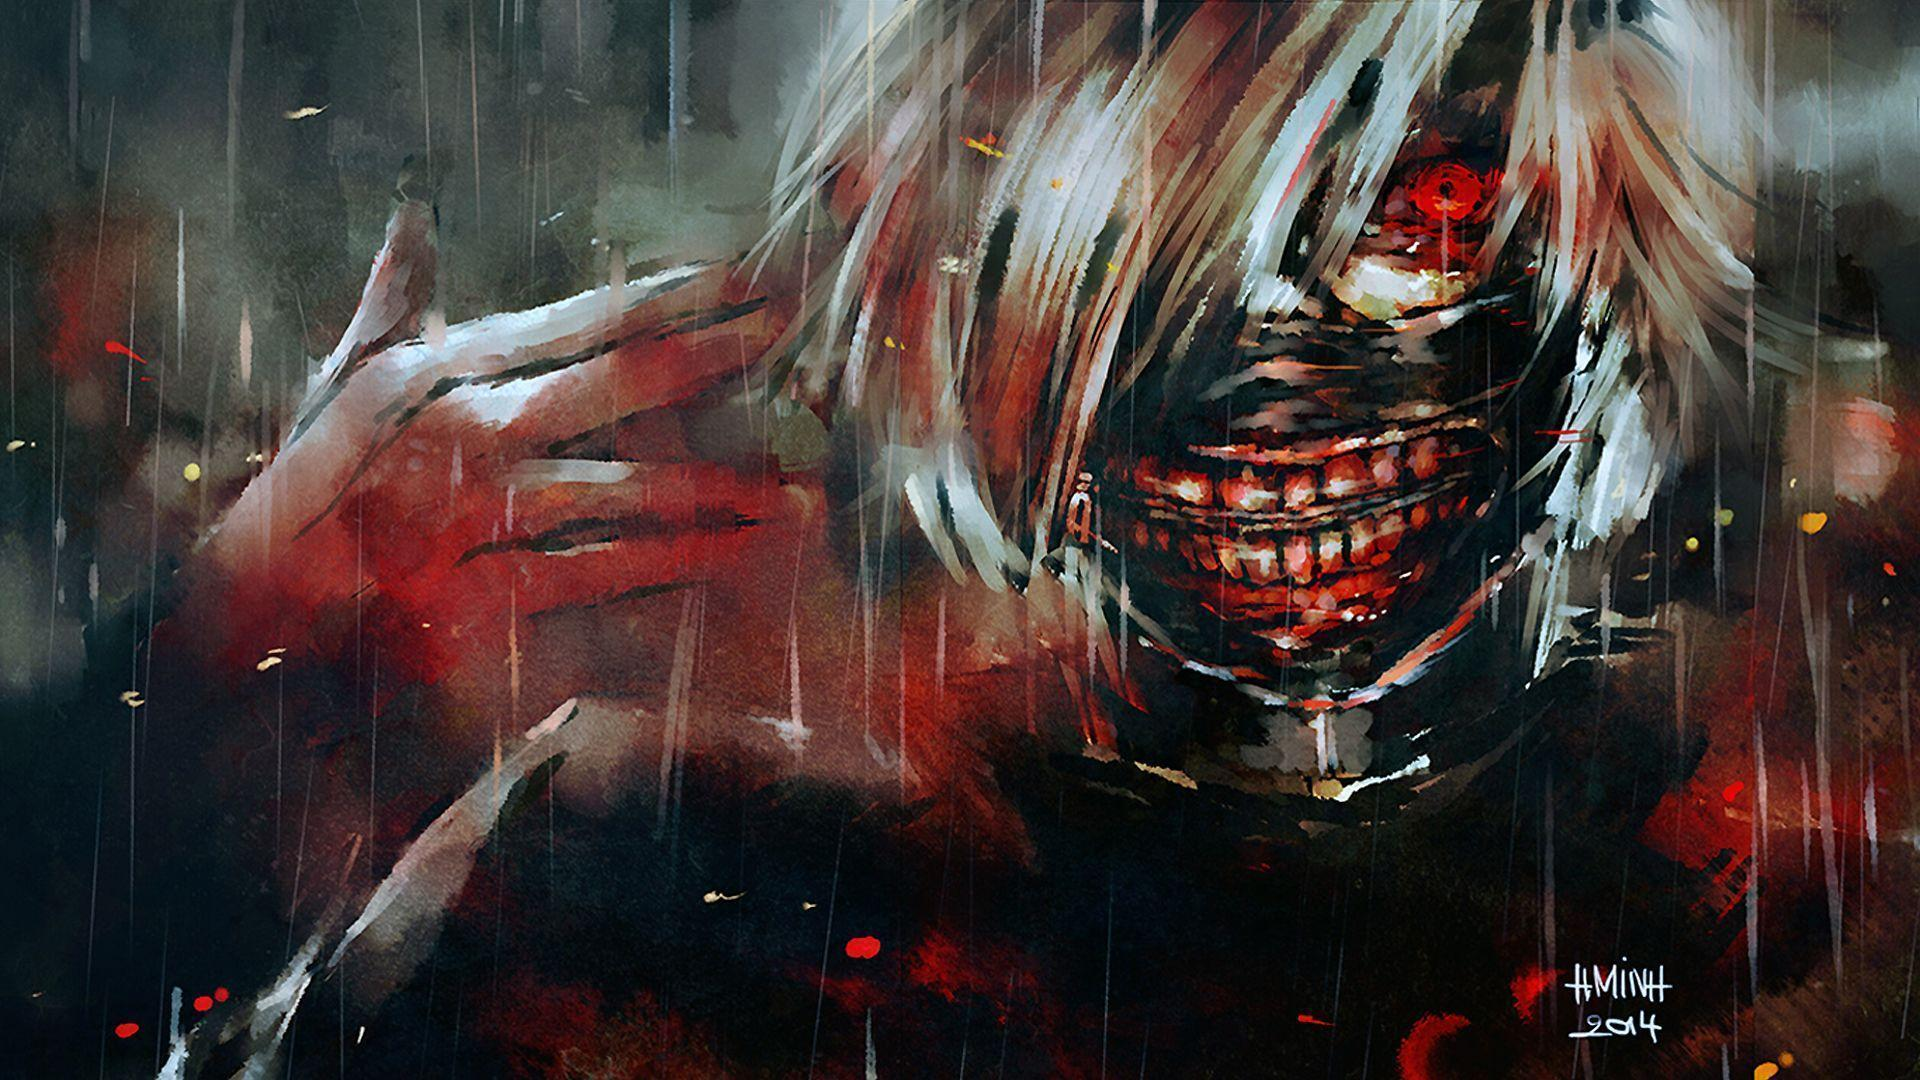 Introduced in android 2.1, this is a function that provided users with richer, animated and interactive backgrounds (called live wallpaper) compared to introduced in android 2.1, this is a function that provided users with richer, animated. Tokyo Ghoul HD Wallpapers - Wallpaper Cave